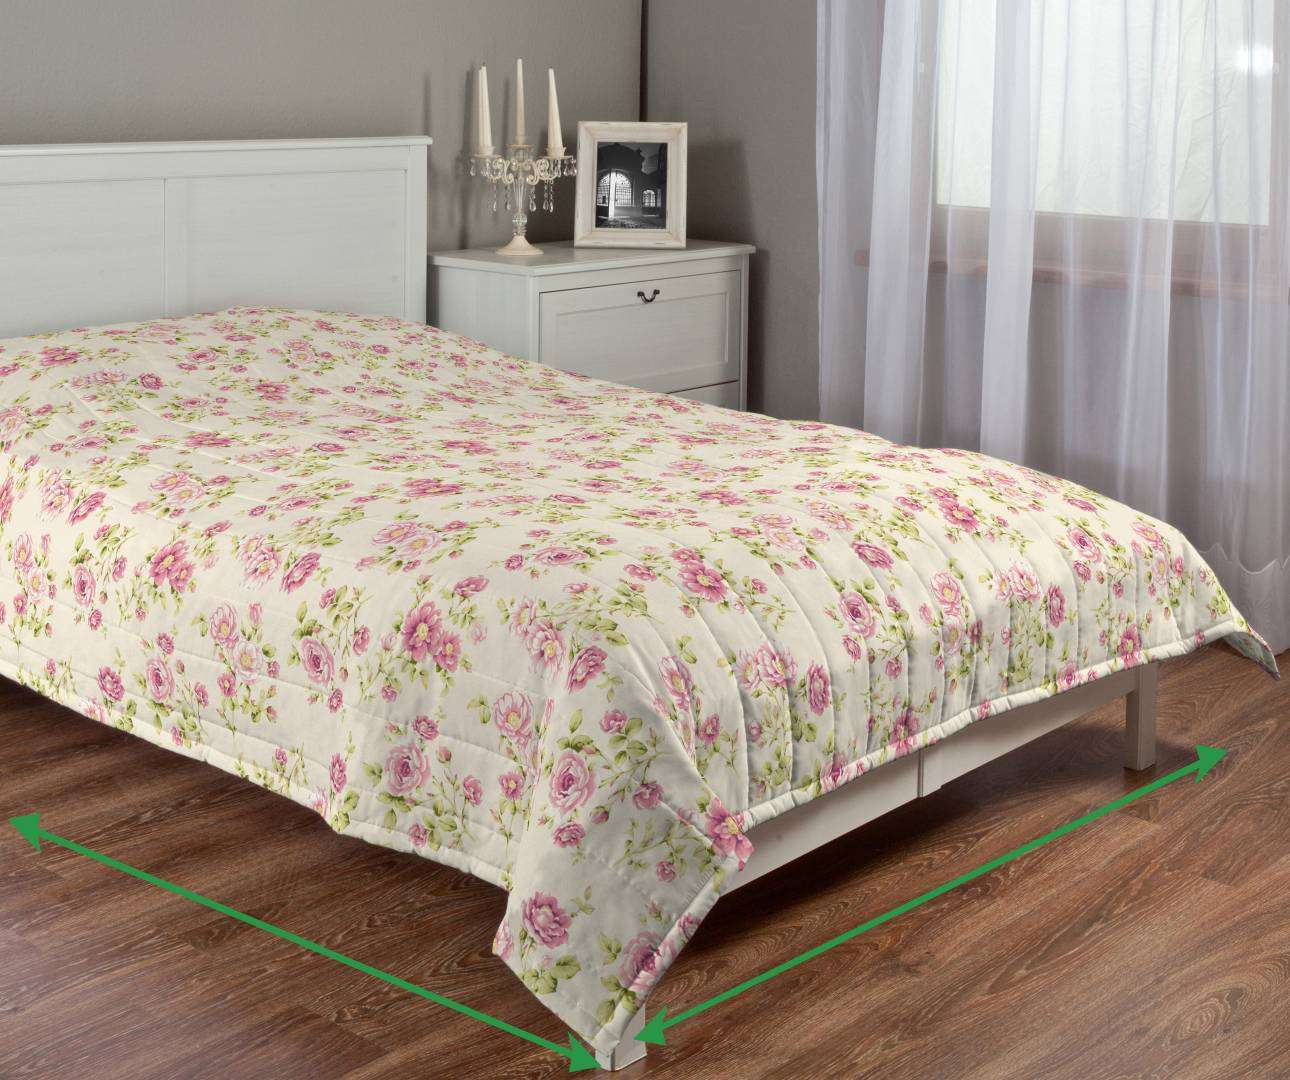 Quilted throw (vertical quilt pattern) in collection Ashley, fabric: 137-43